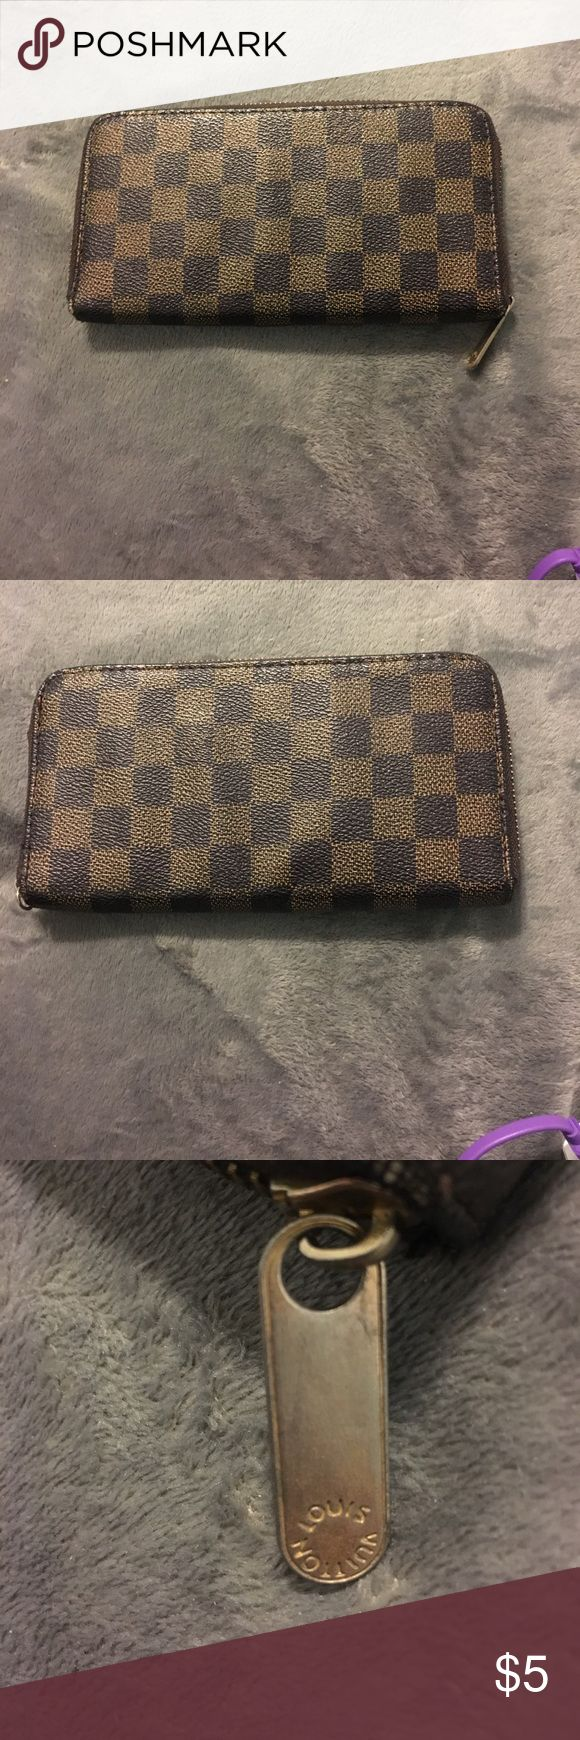 Louis Vuitton wallet! Louis Vuitton Wallet! It is NOT REAL! Missing zipper on inside but outside zipper works just fine! I posted a picture of it compared to my real Louis! Bags Wallets